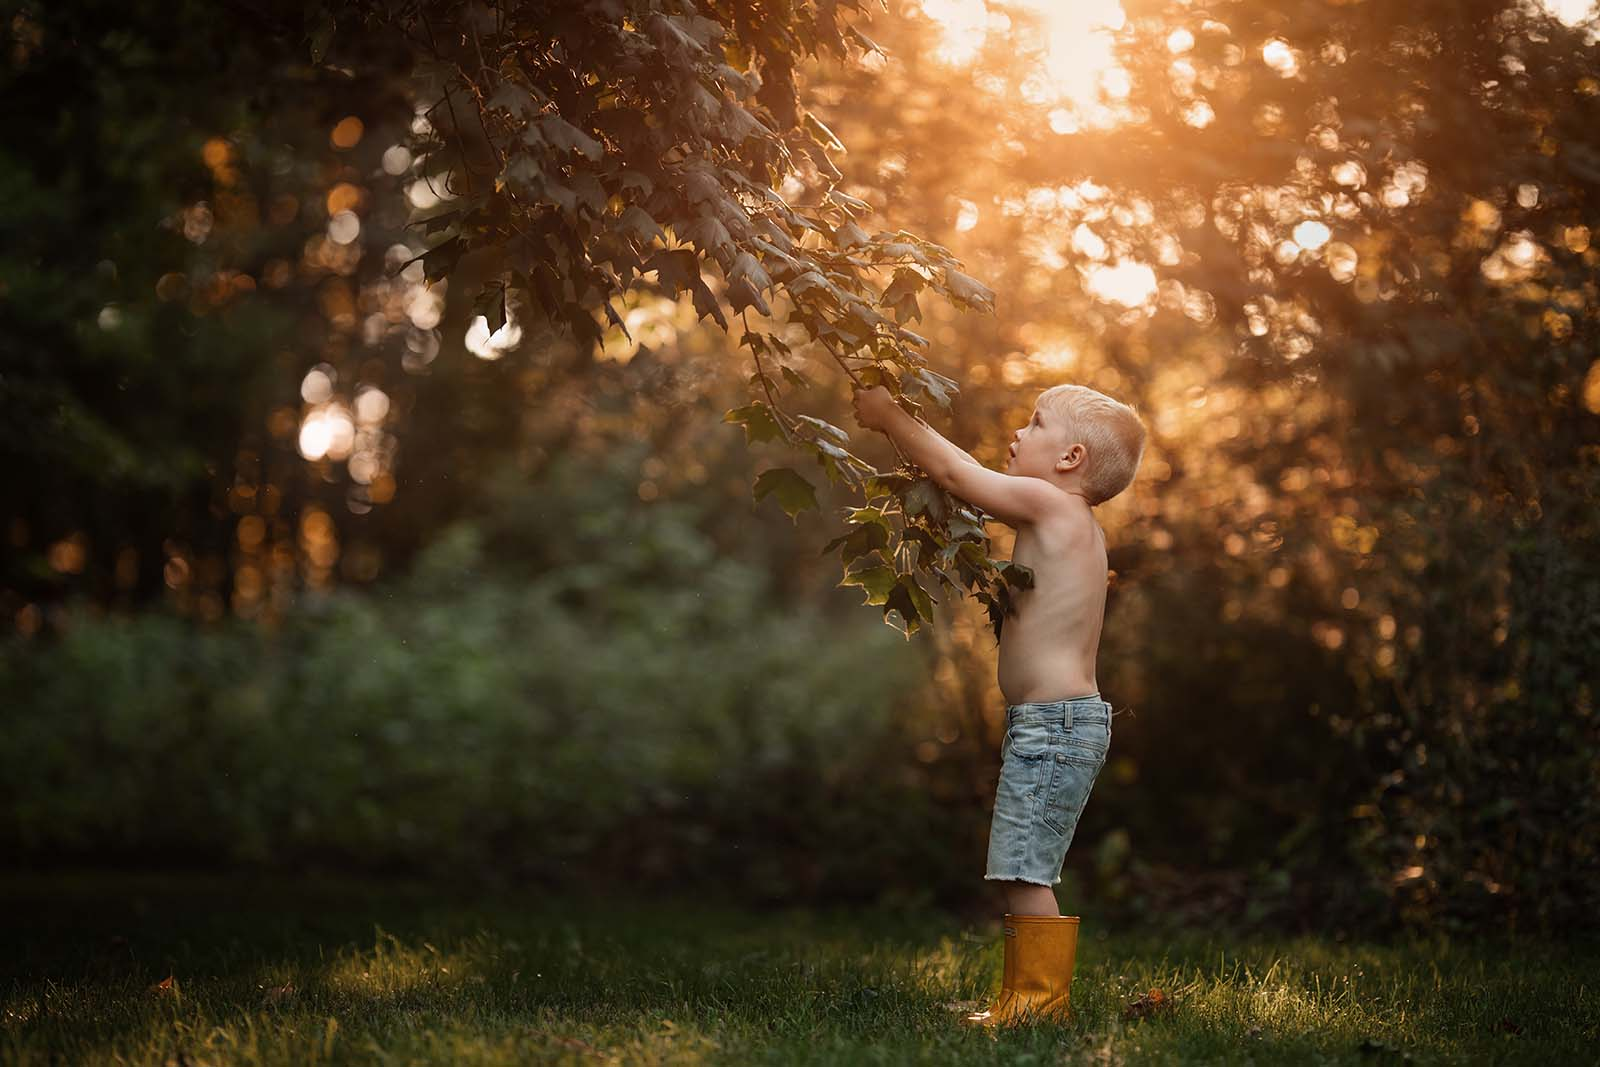 How the Sigma 105mm Art lens helps me capture the magic of childhood